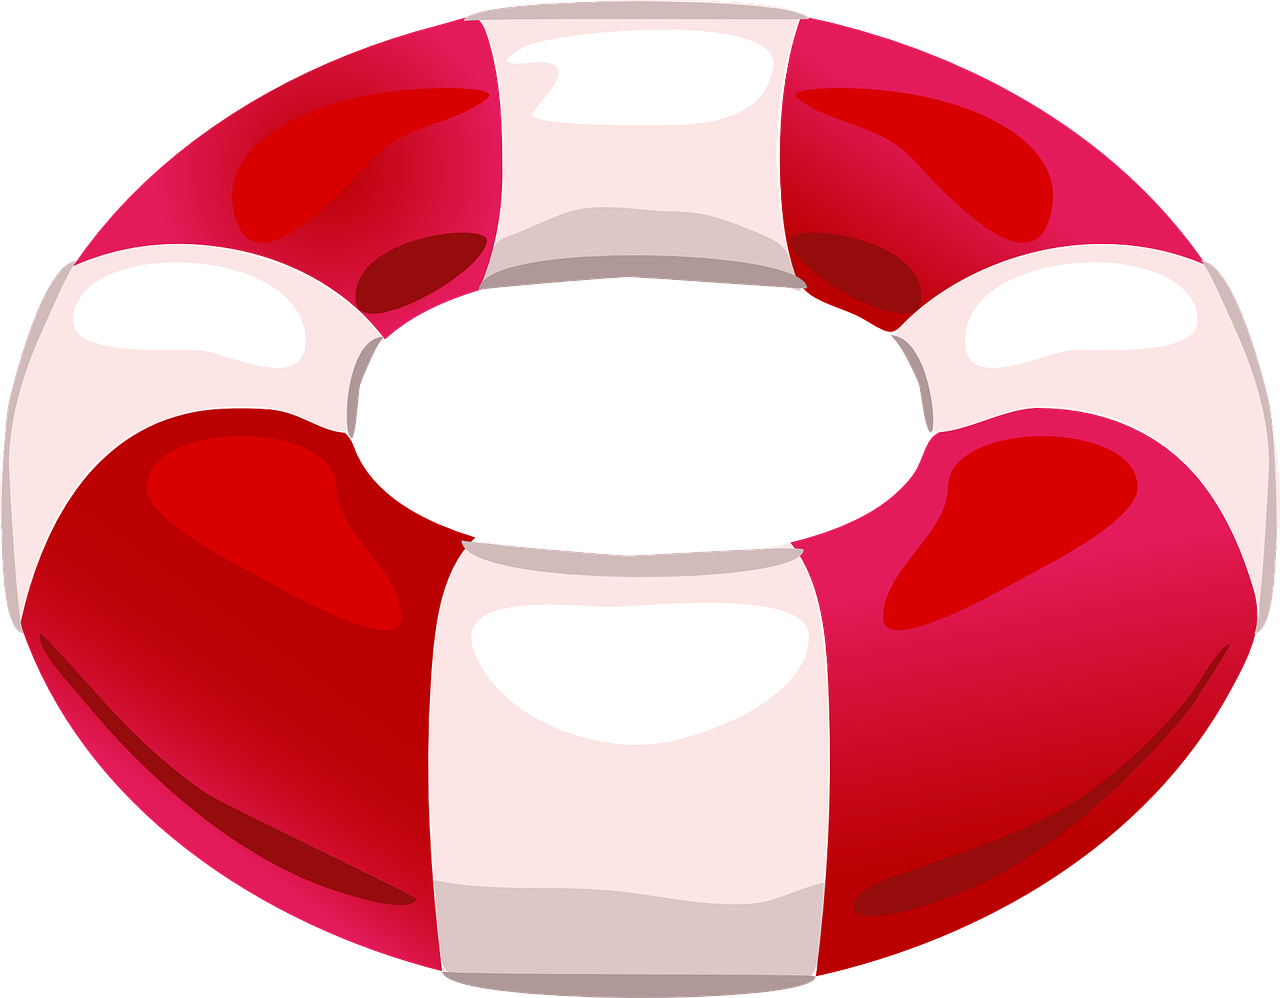 lifebuoy buoy sos free photo